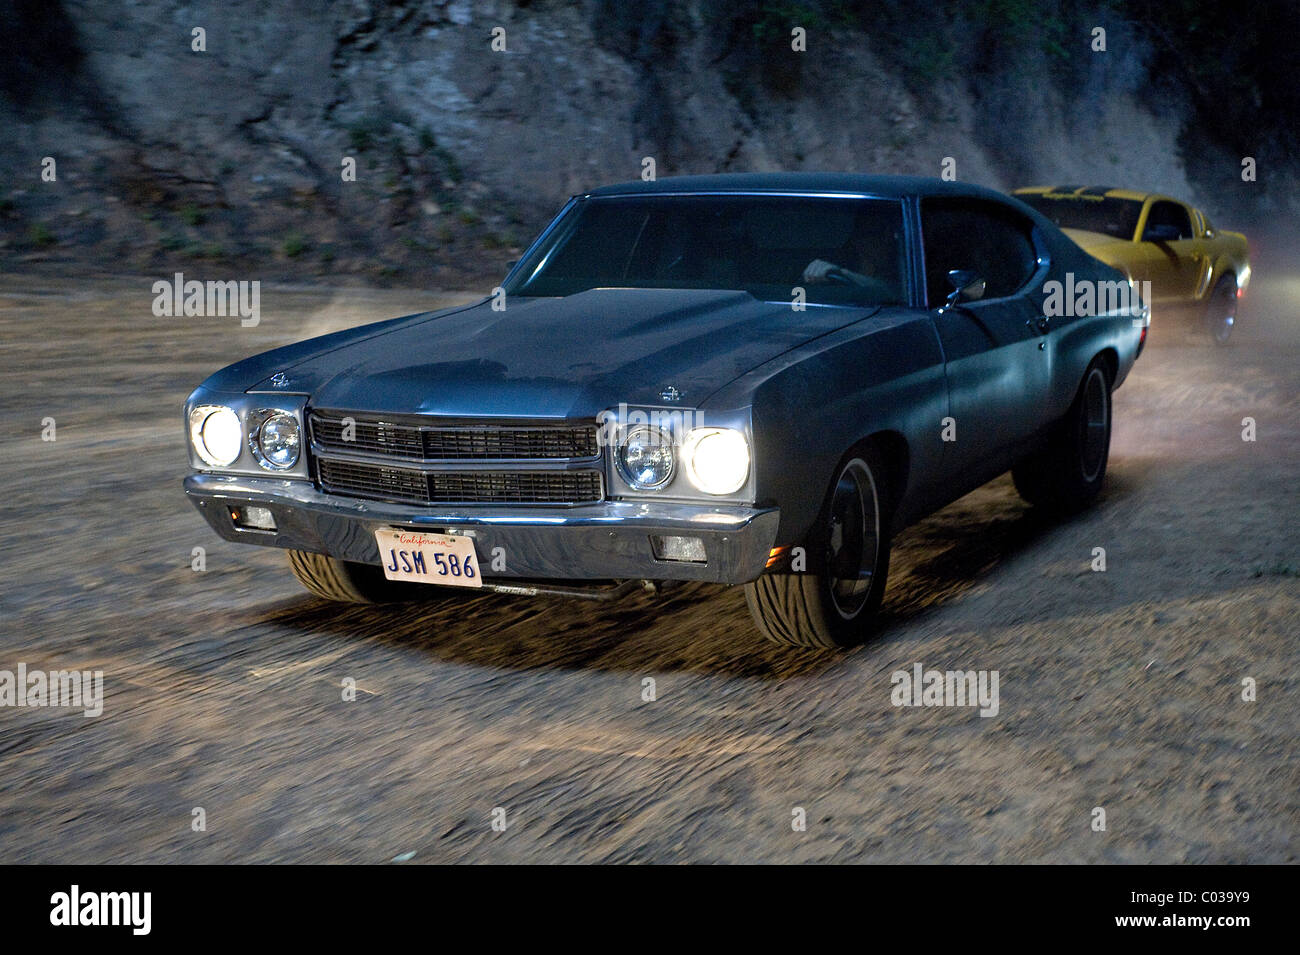 Chevy Chevelle Stock Photos & Chevy Chevelle Stock Images - Alamy